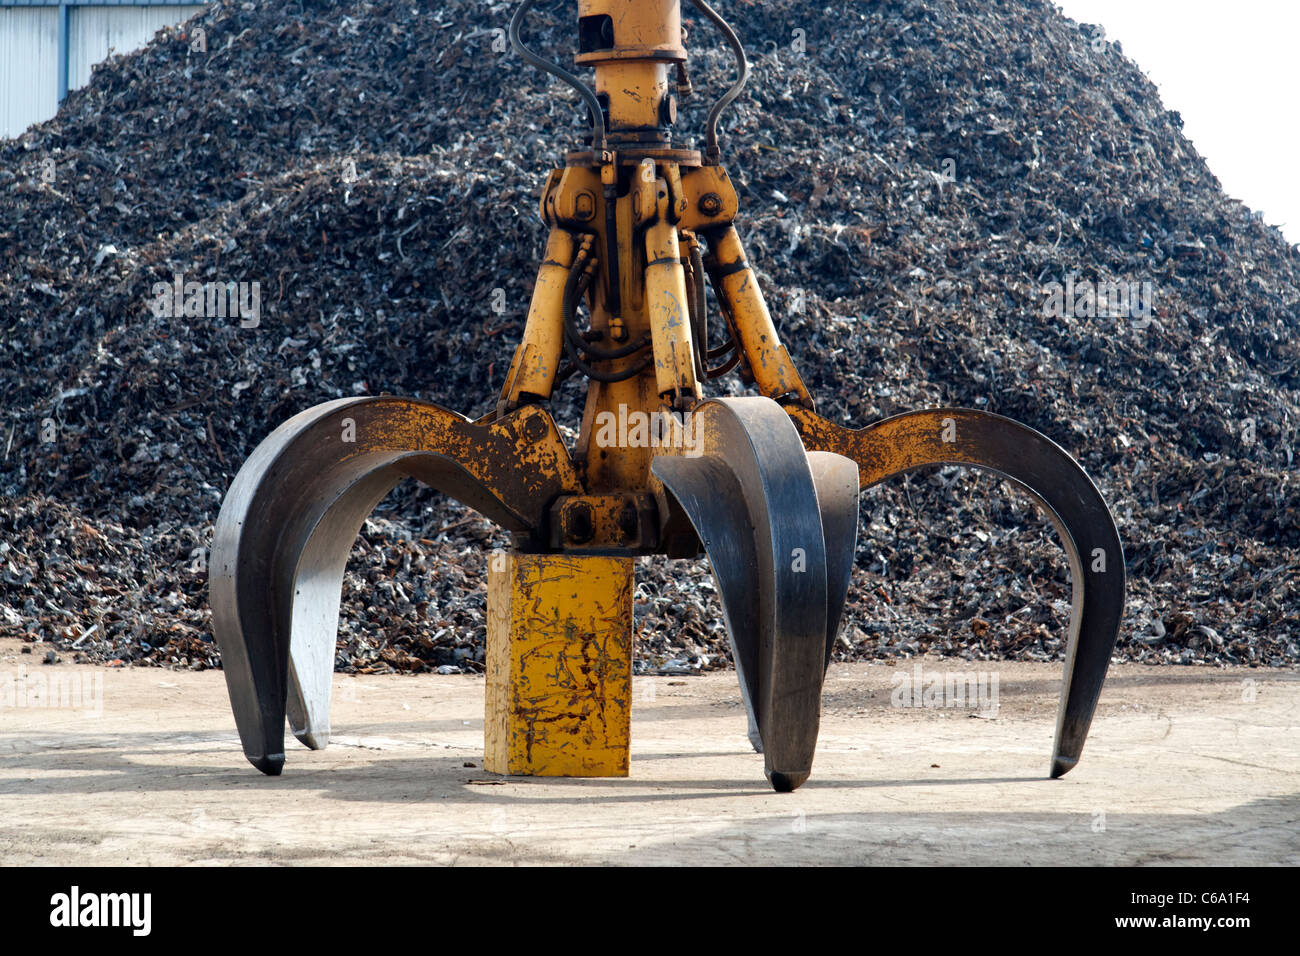 Claw clamp in front of scrap metal (Normandy, France). - Stock Image